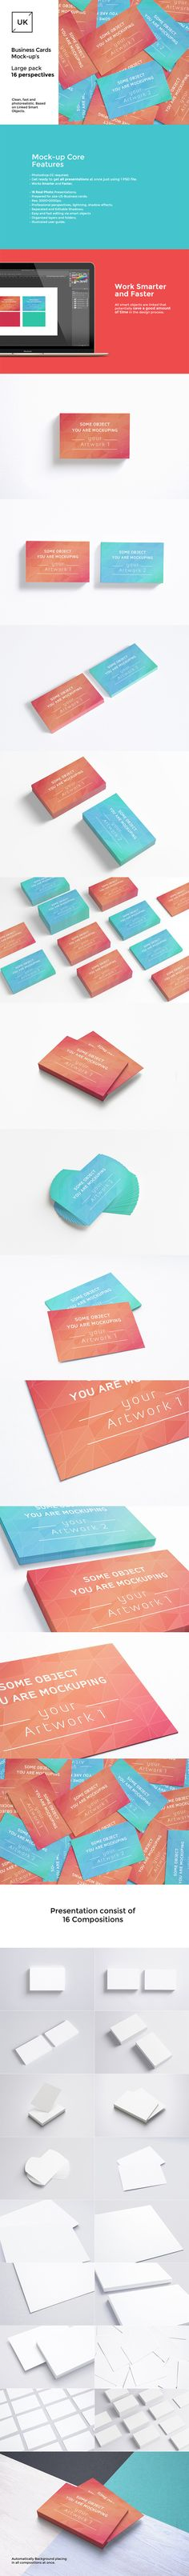 UK Business Cards Mock-up's Pack by itembridge creative store on @creativemarket